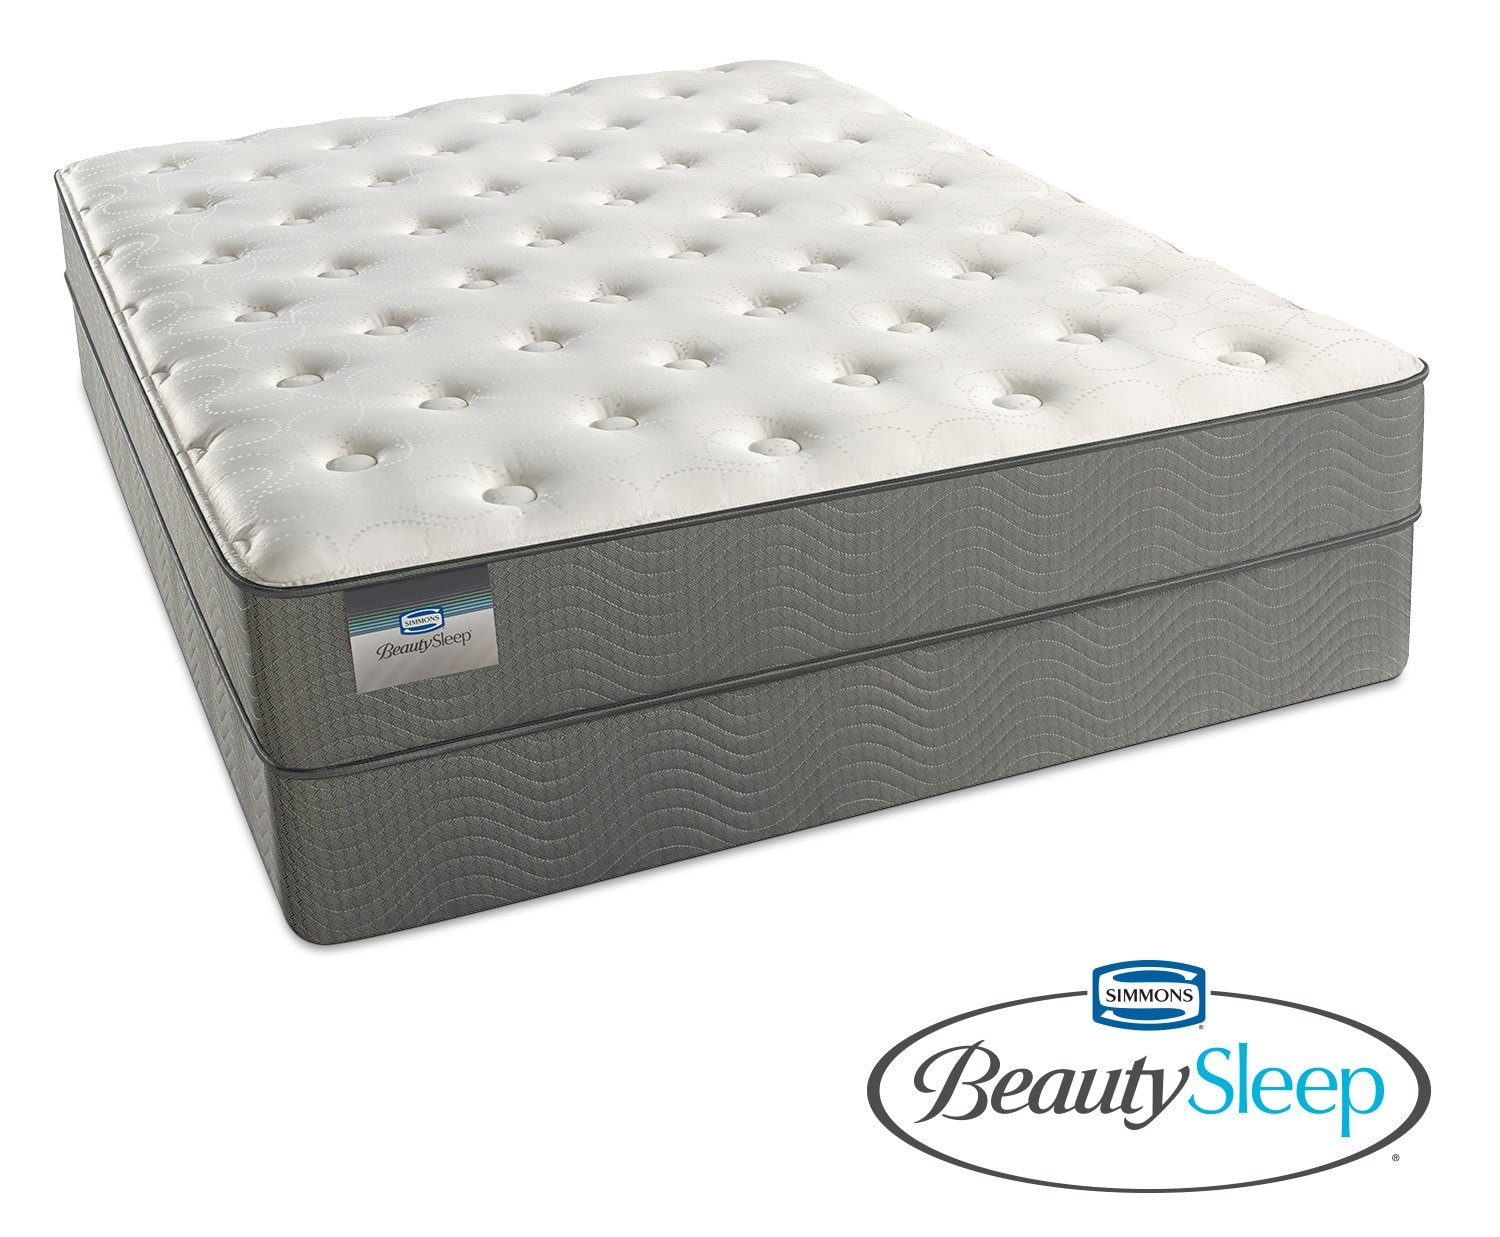 Beautysleep Mattresses Simmons American Signature Furniture